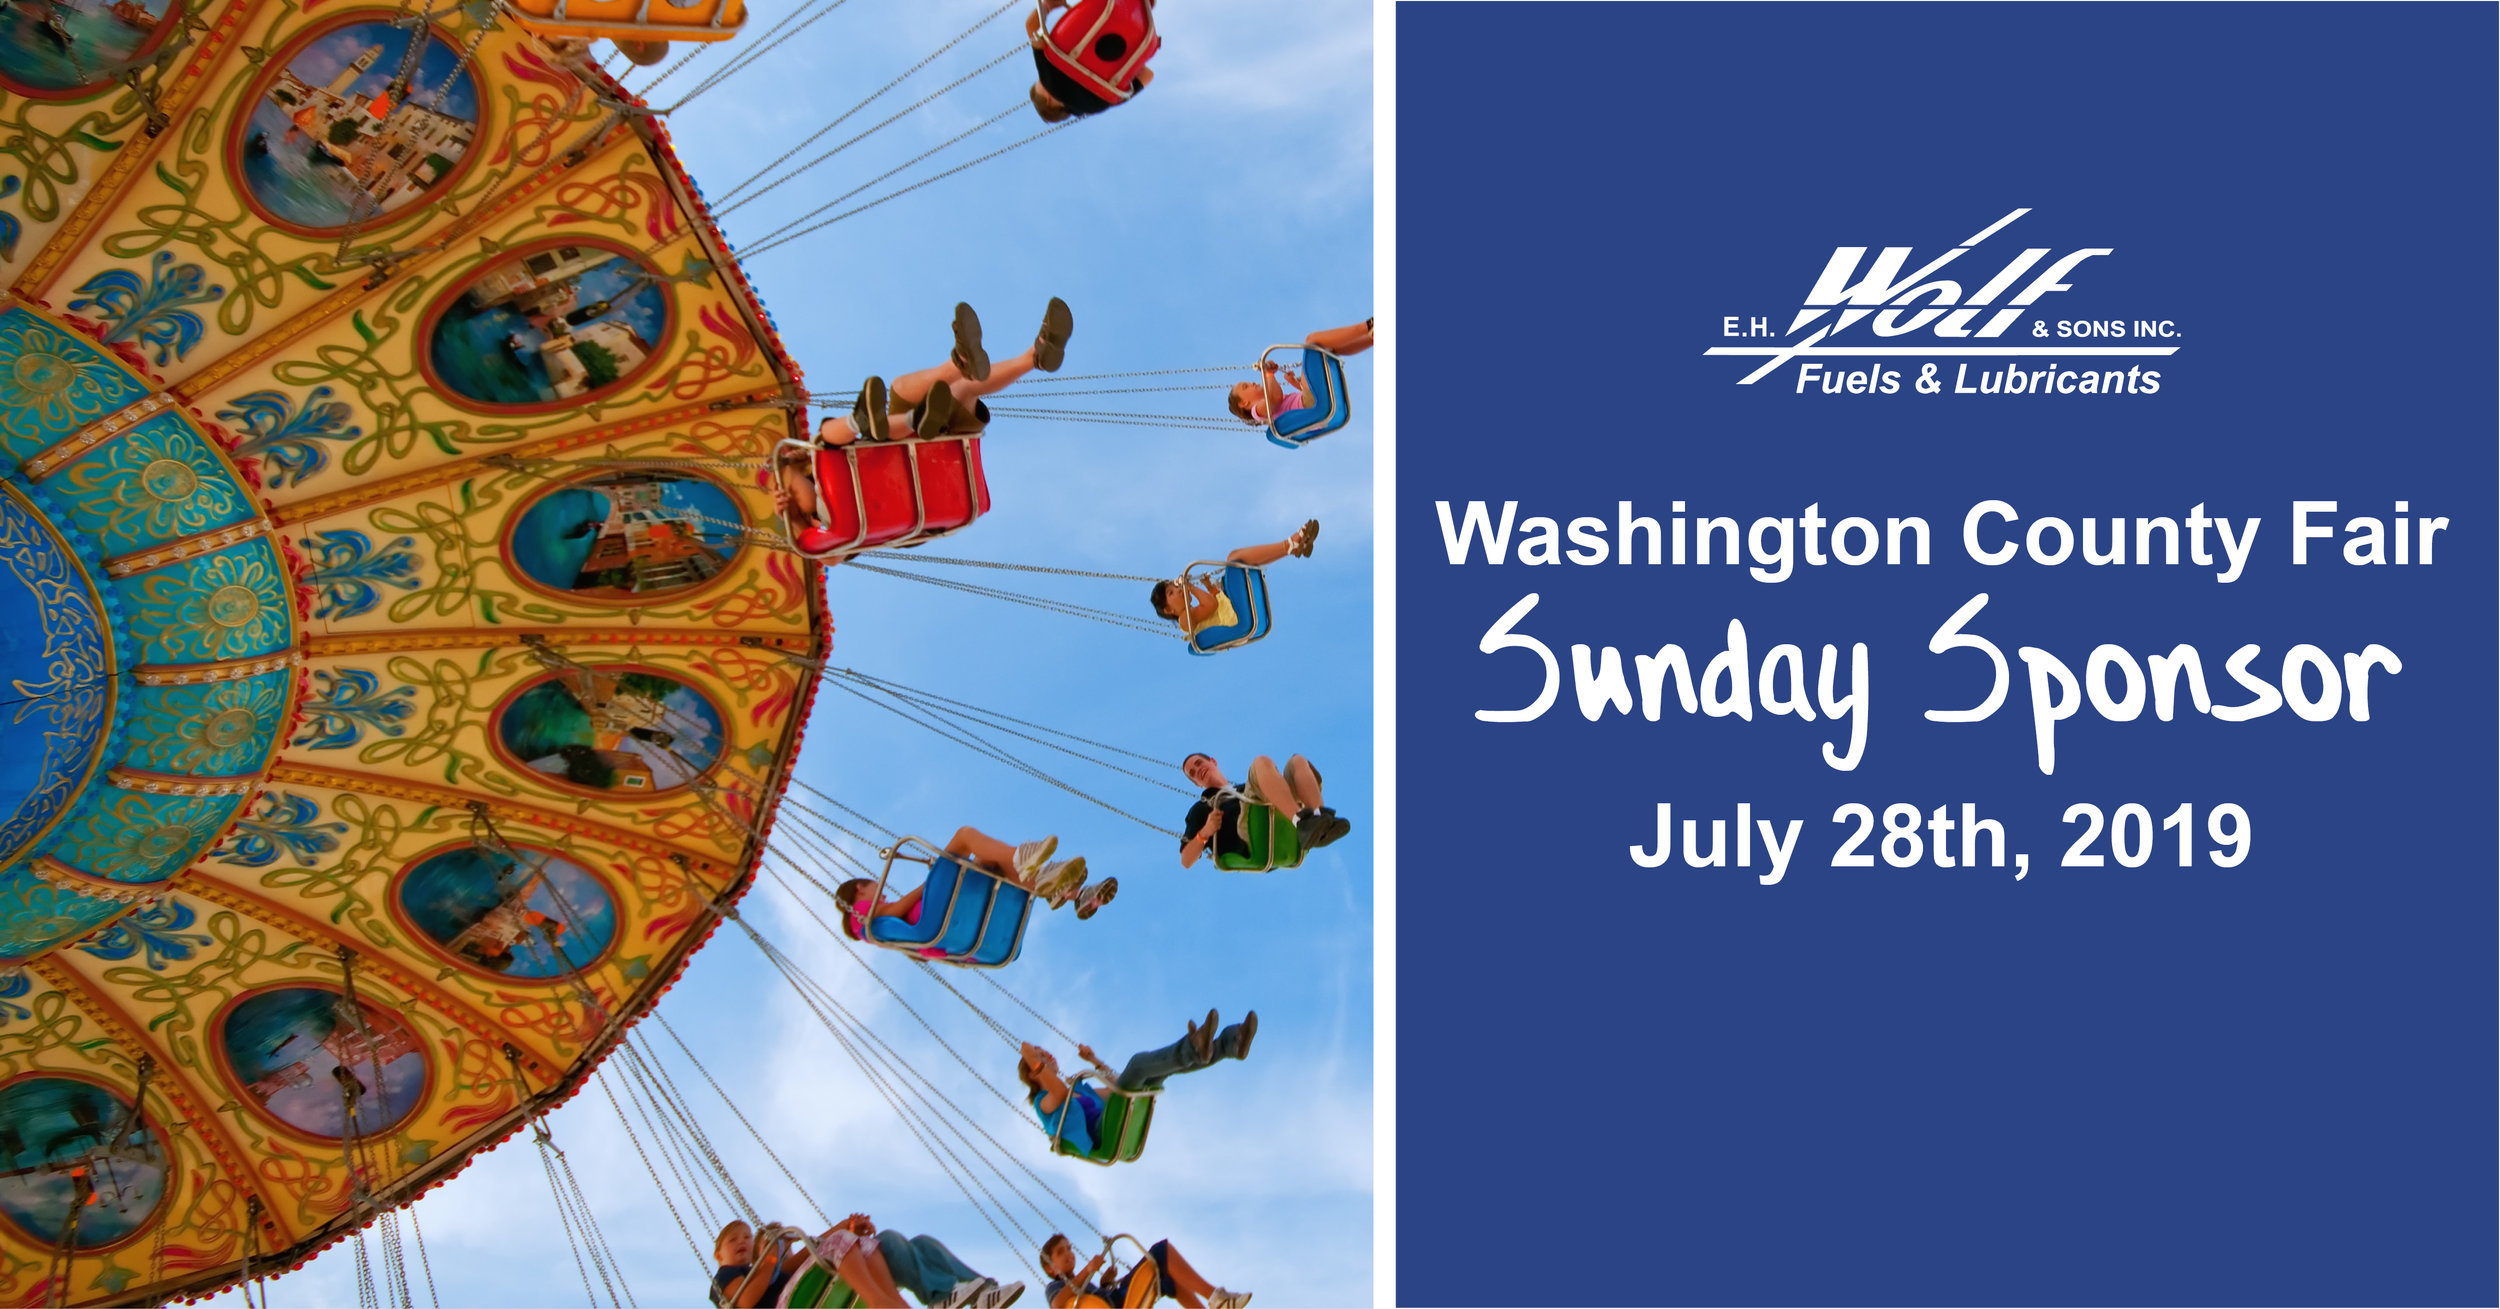 EH Wolf is the Sunday Sponsor for the Washington County Fair